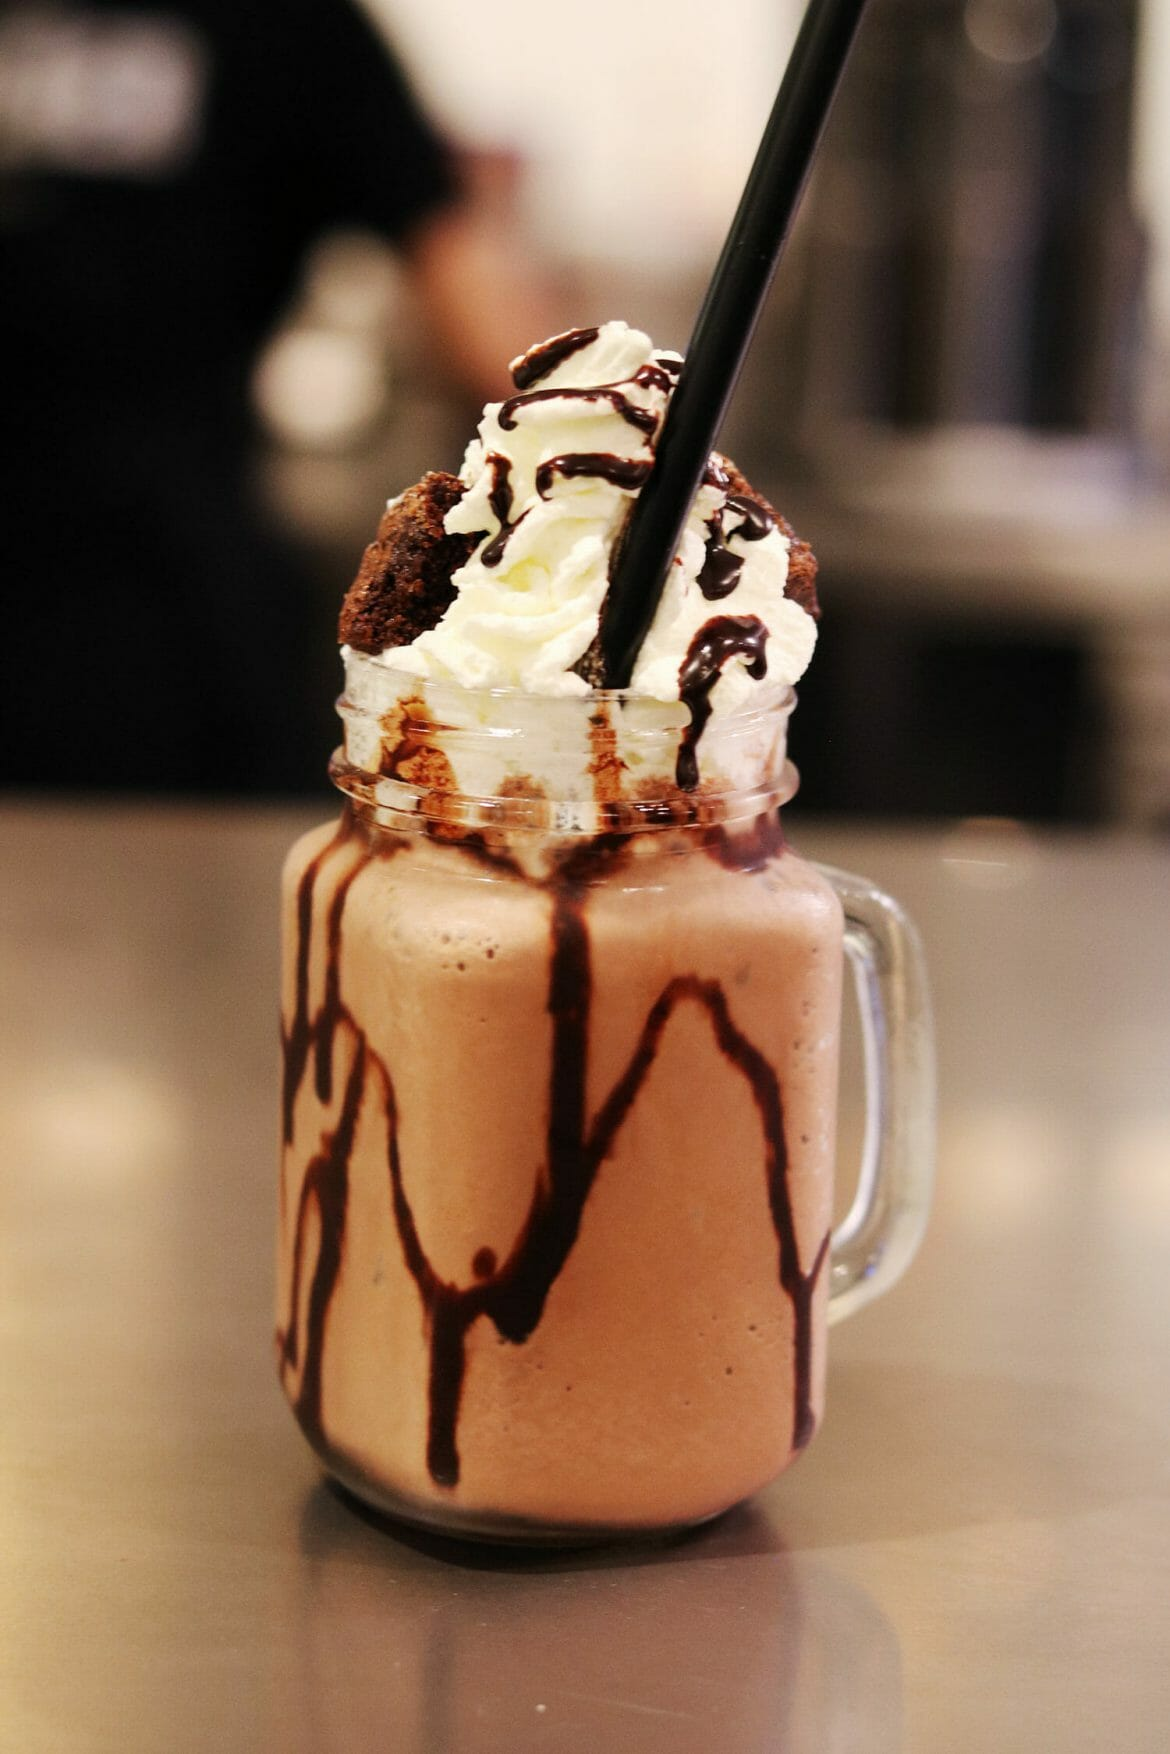 Chocolate Milkshake at The Butcher, burger restaurant in Dubai Marina